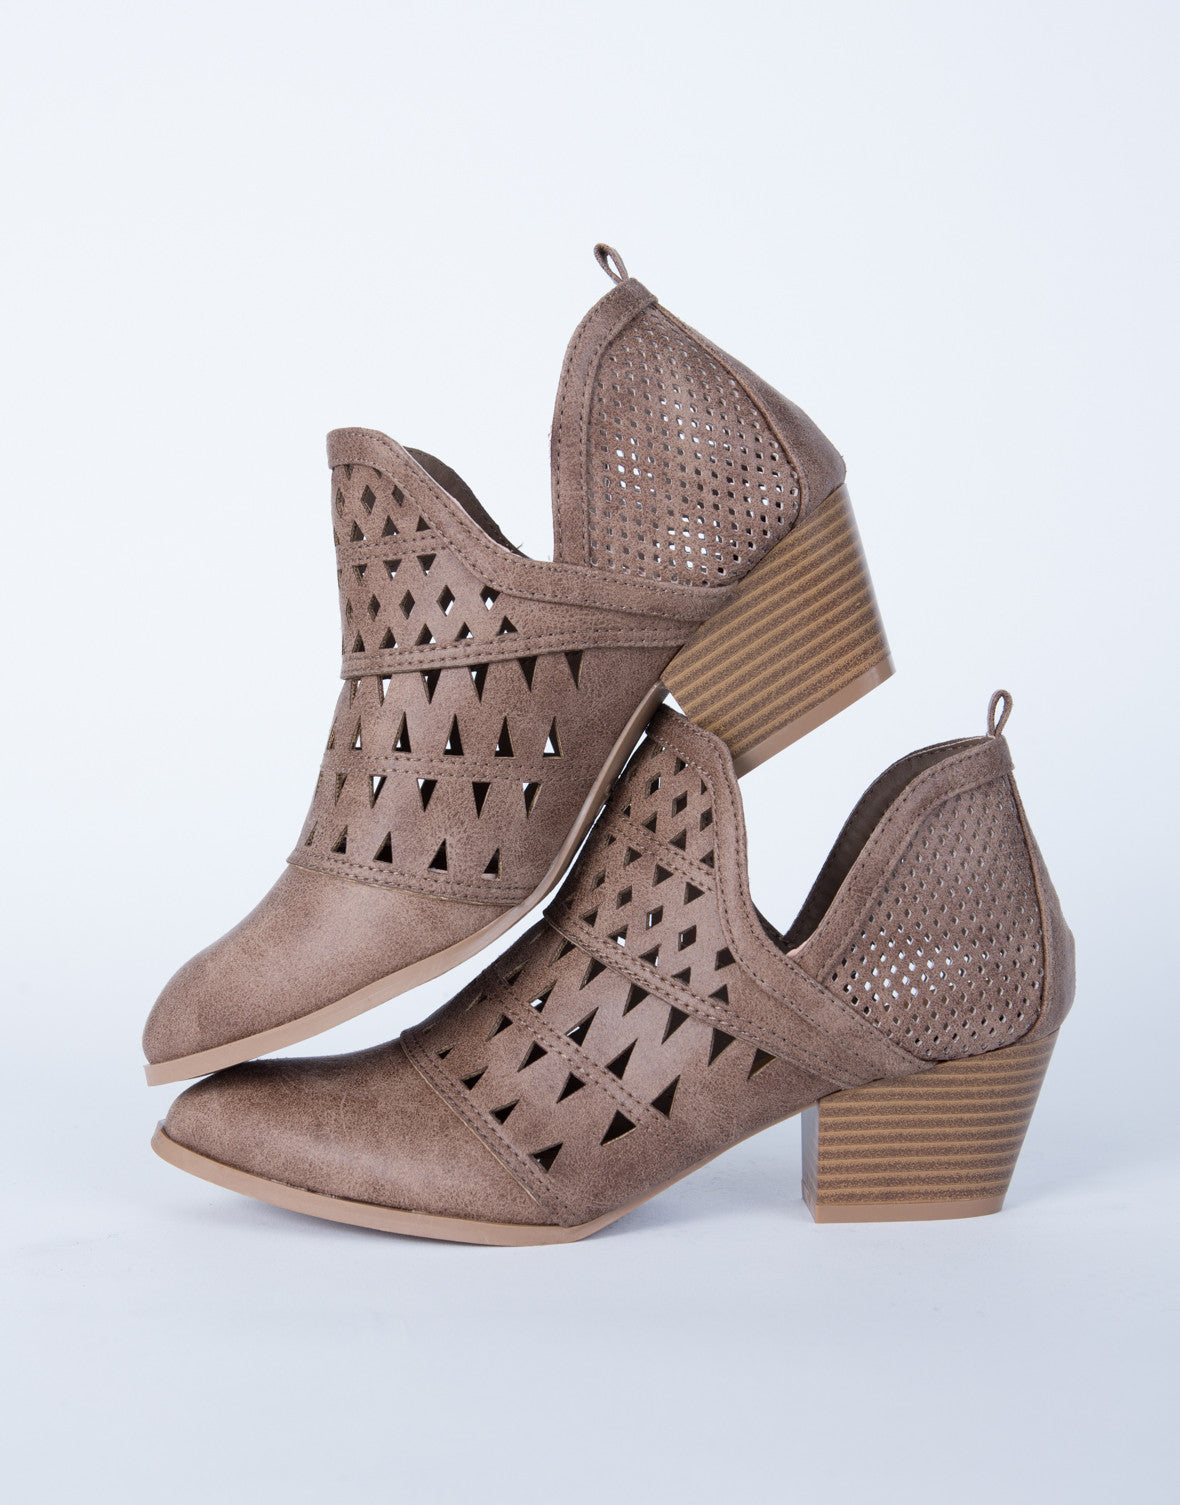 Perforated Cut Out Booties Brown Ankle Booties Low Cut